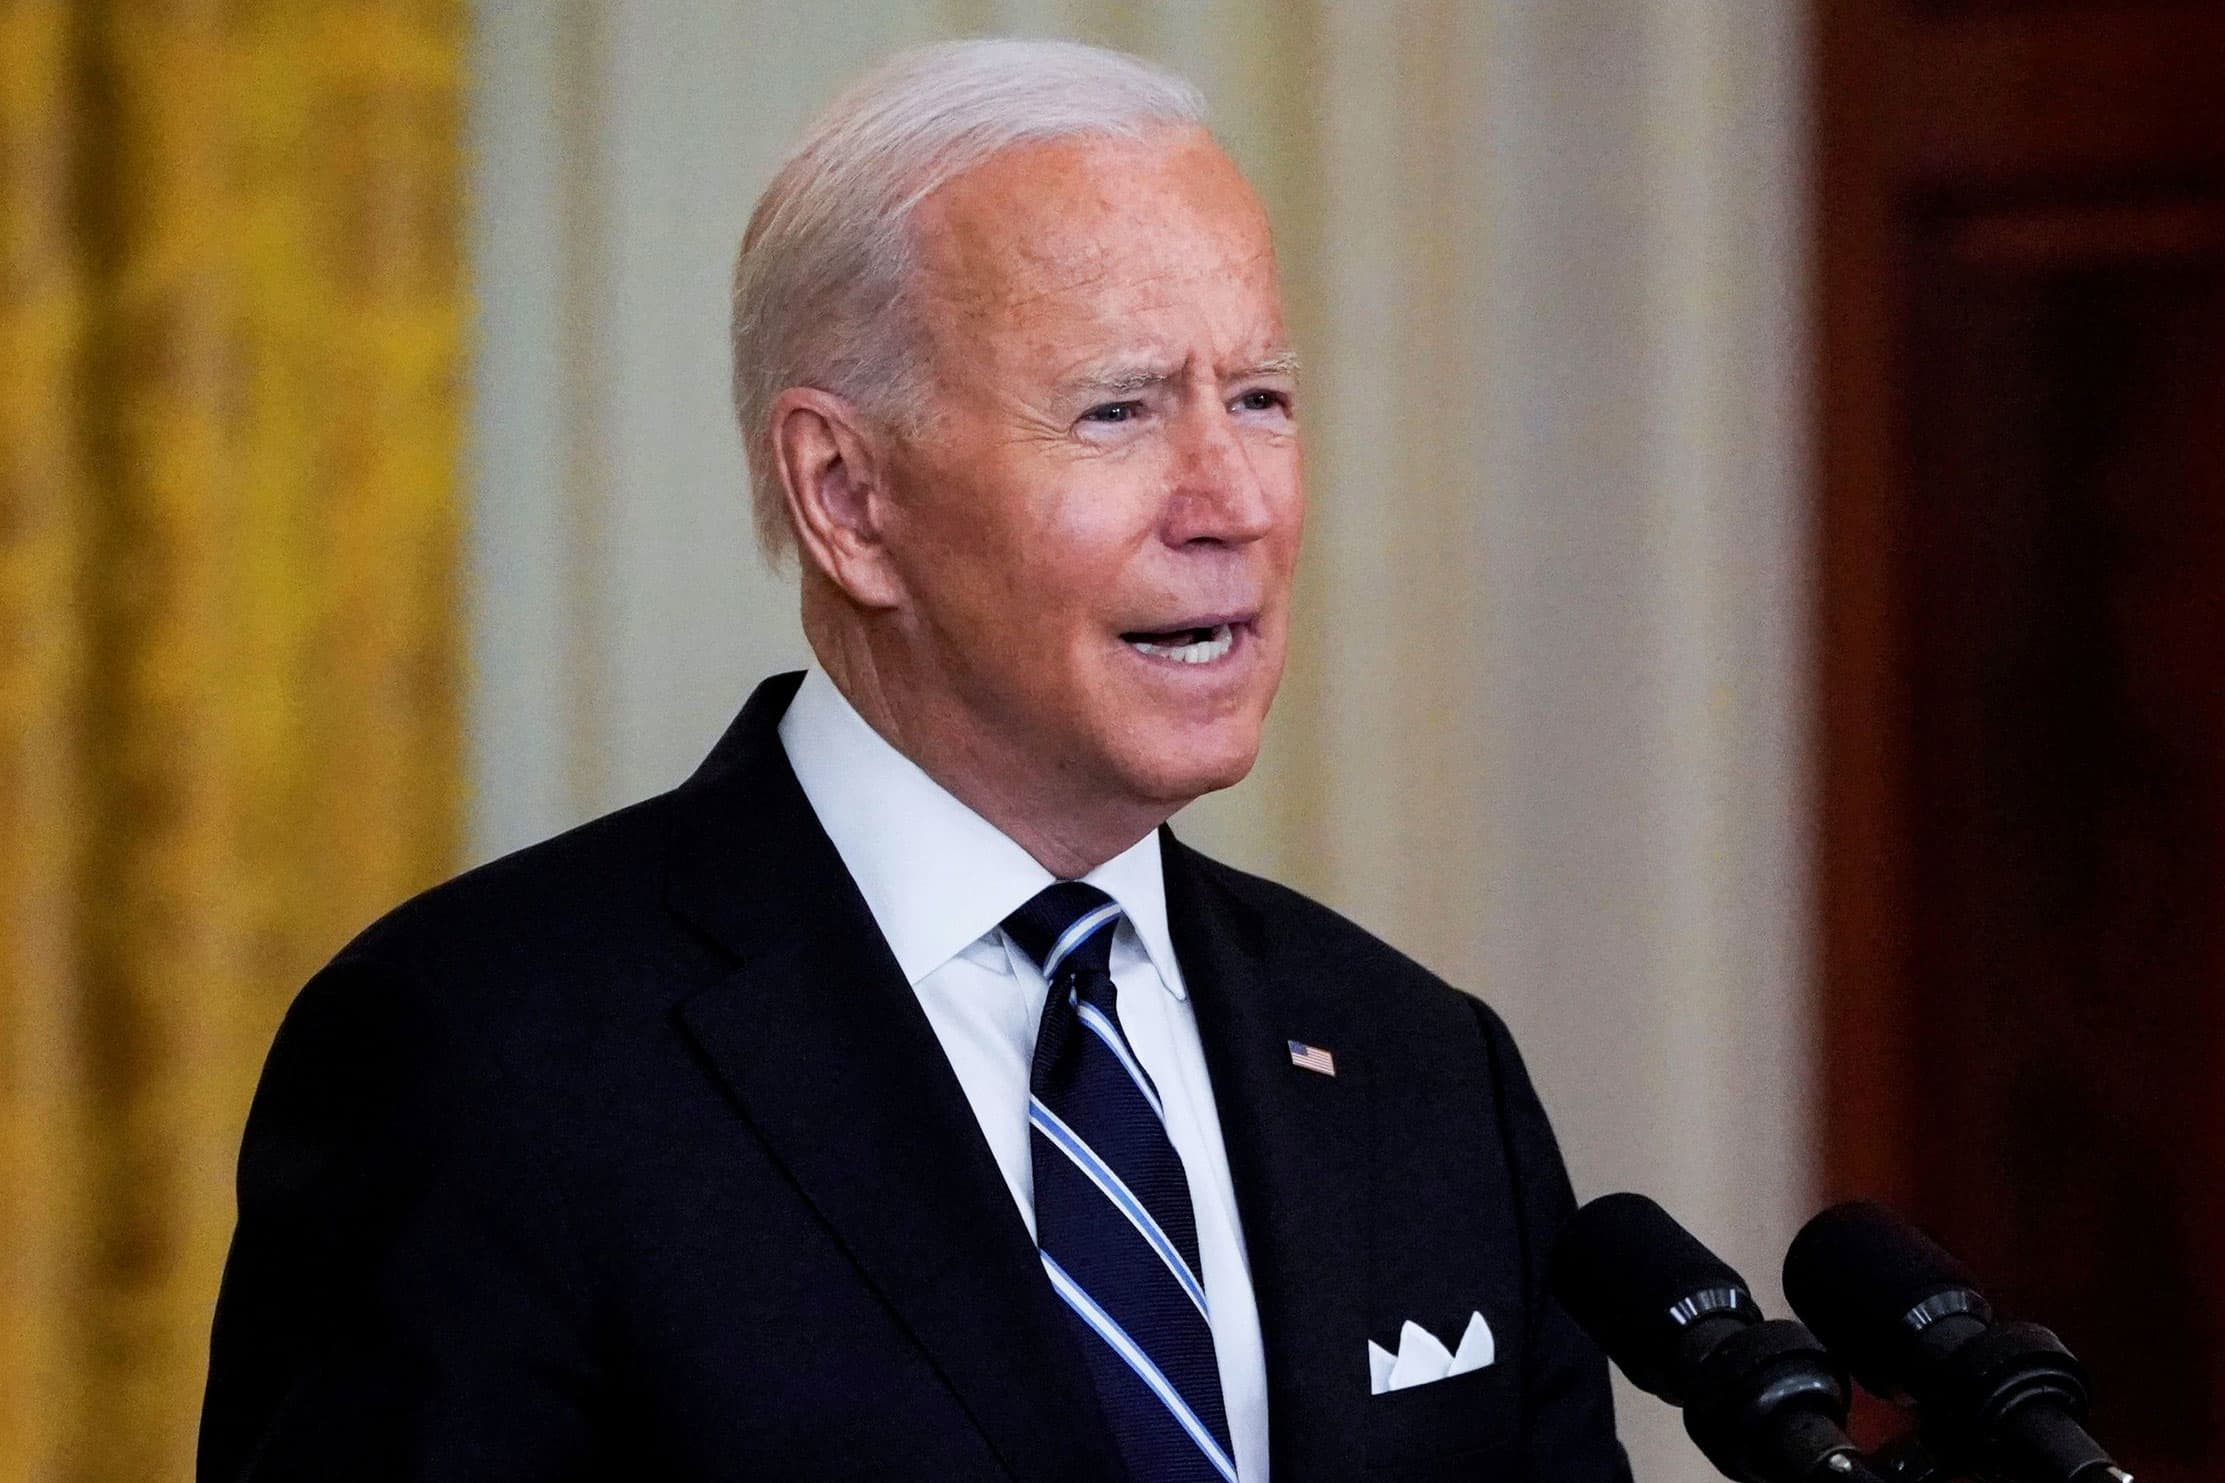 Biden to host tech, finance and energy CEOs for security summit at White House following wave of cyberattacks